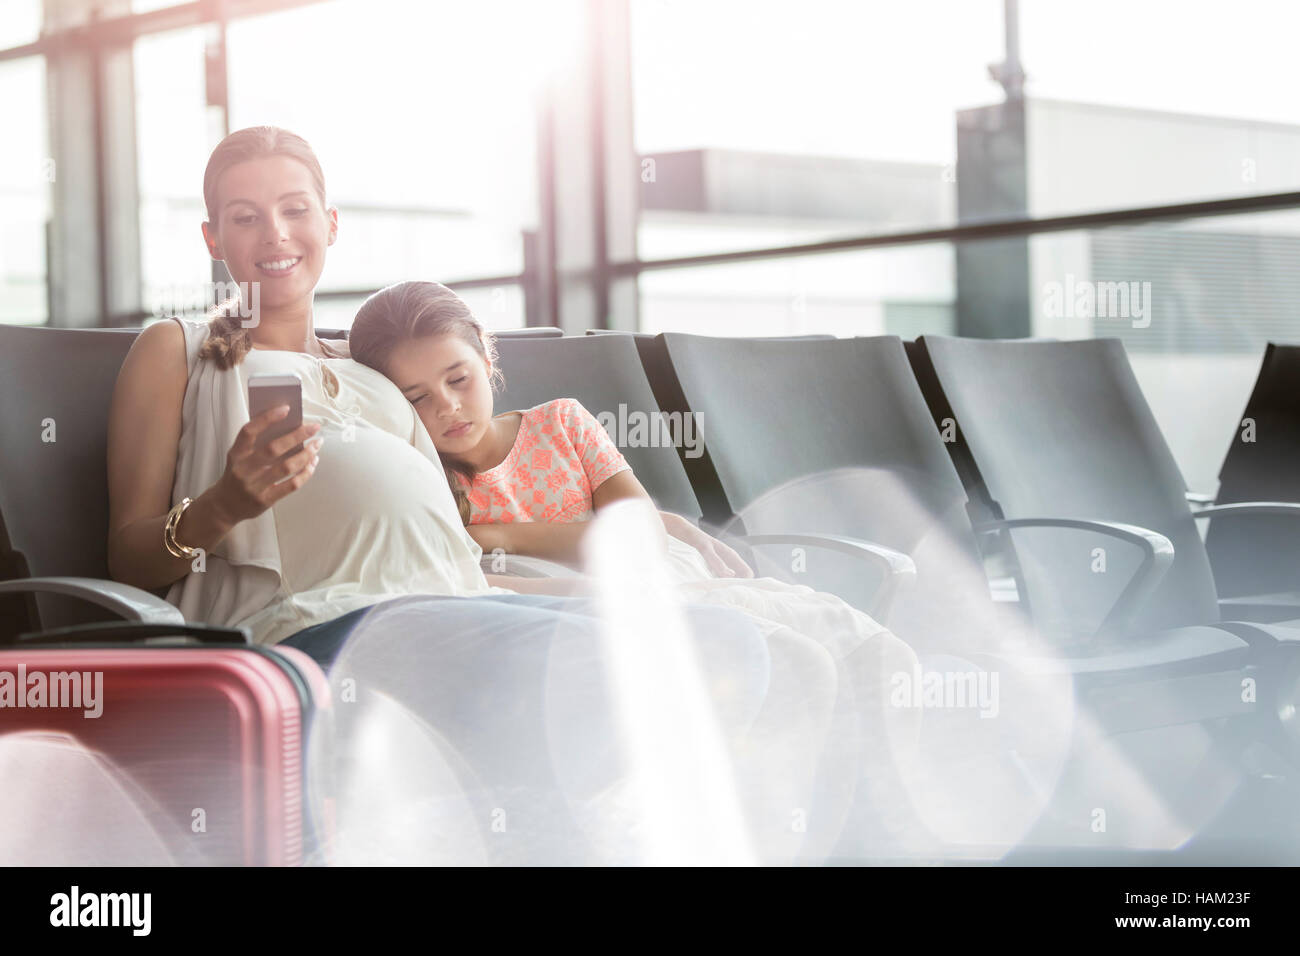 Pregnant mother with cell phone and sleeping daughter in airport departure area - Stock Image